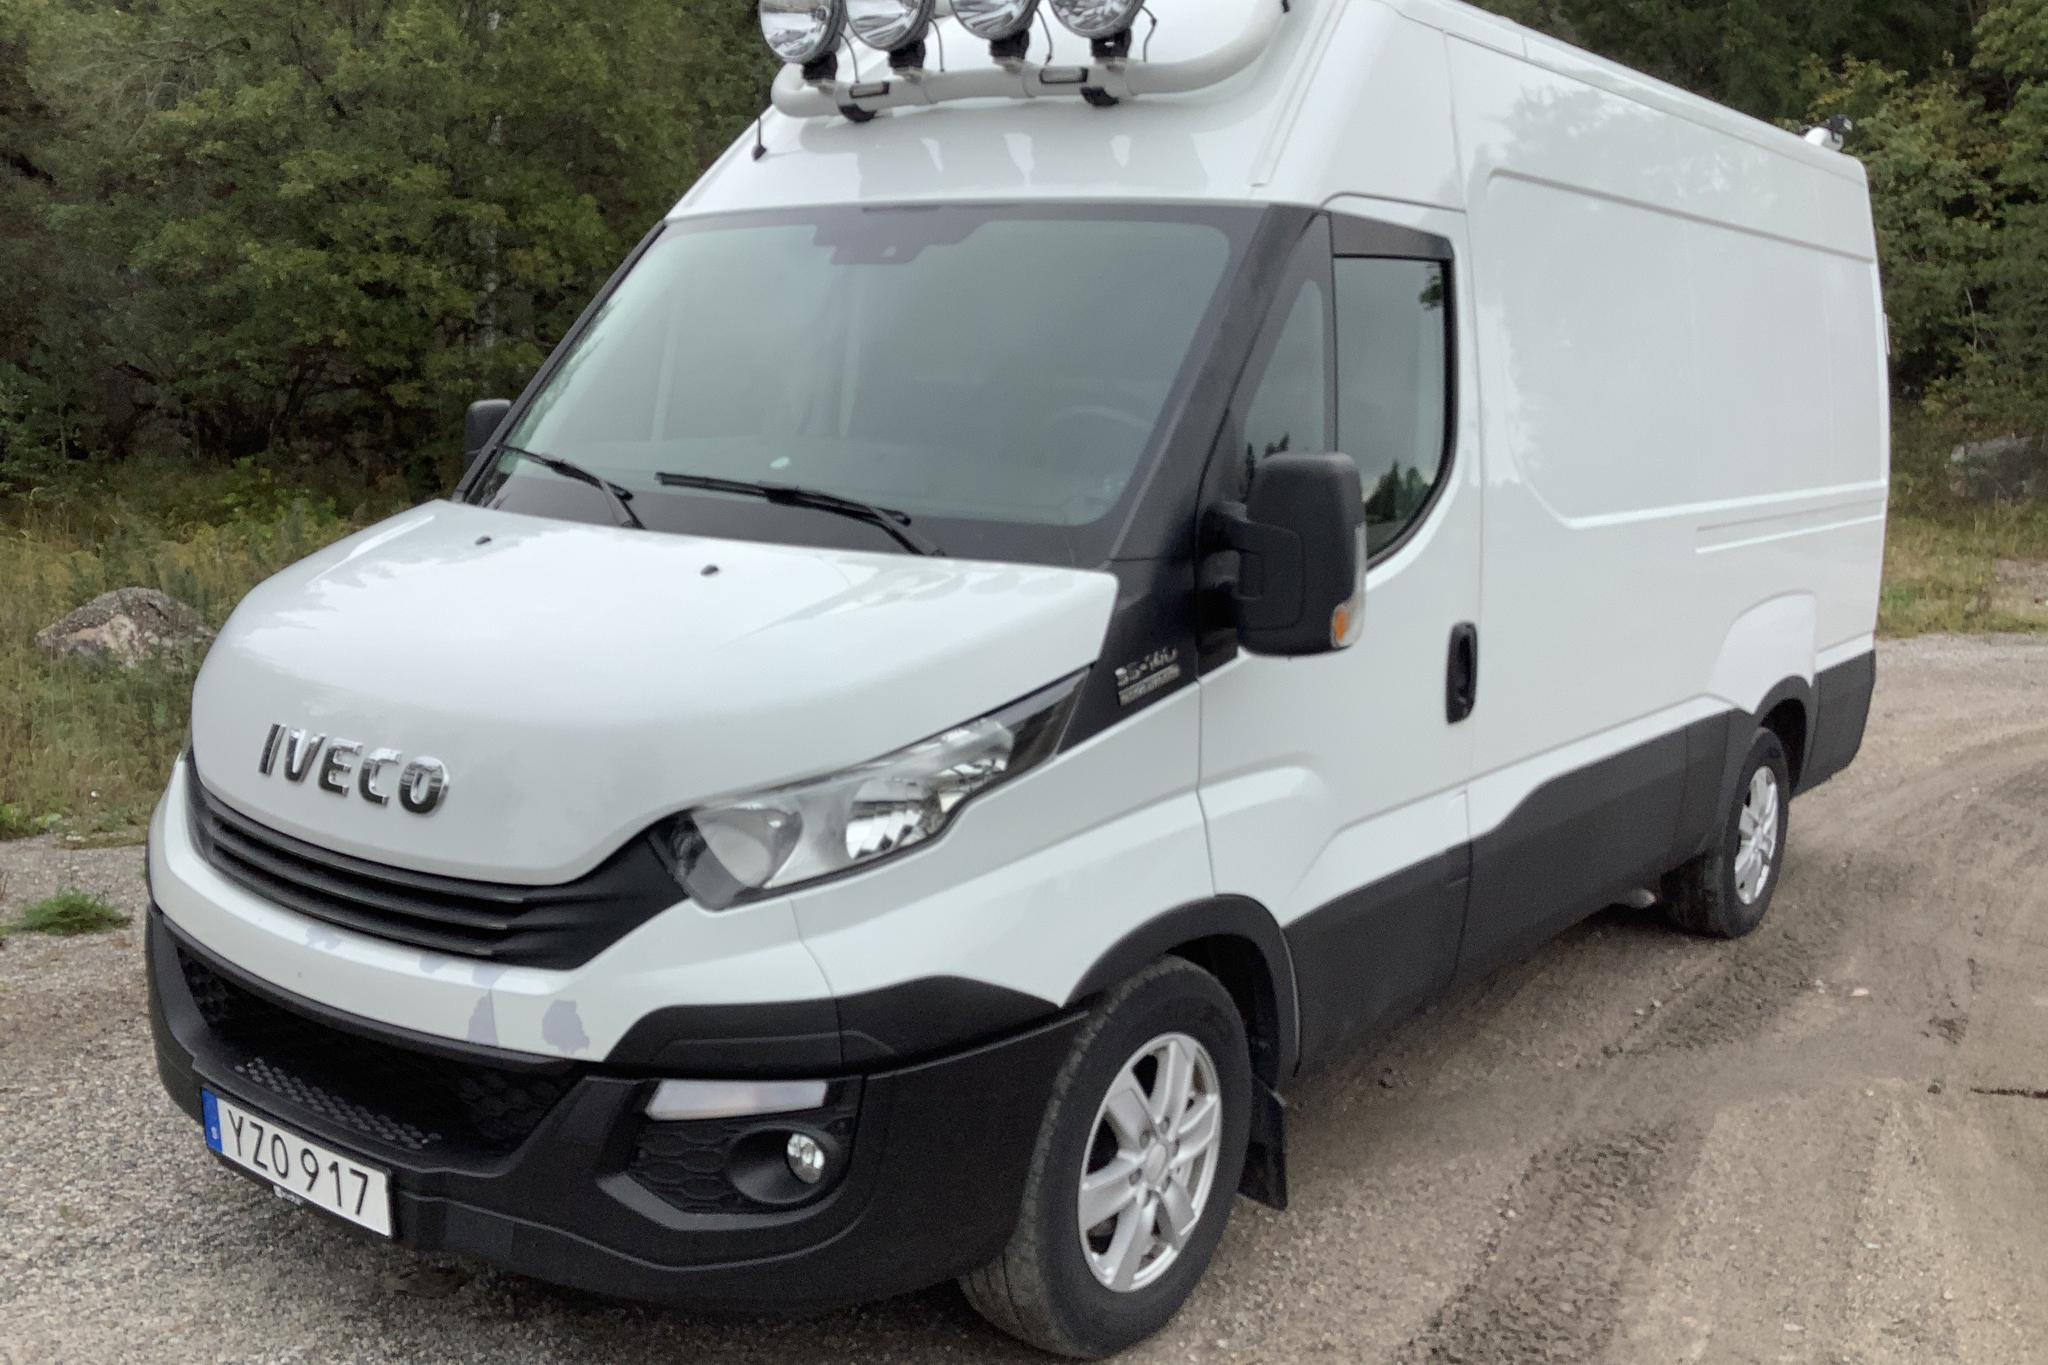 Iveco Daily 35 2.3 (136hk) - 53 760 km - Automatic - white - 2018